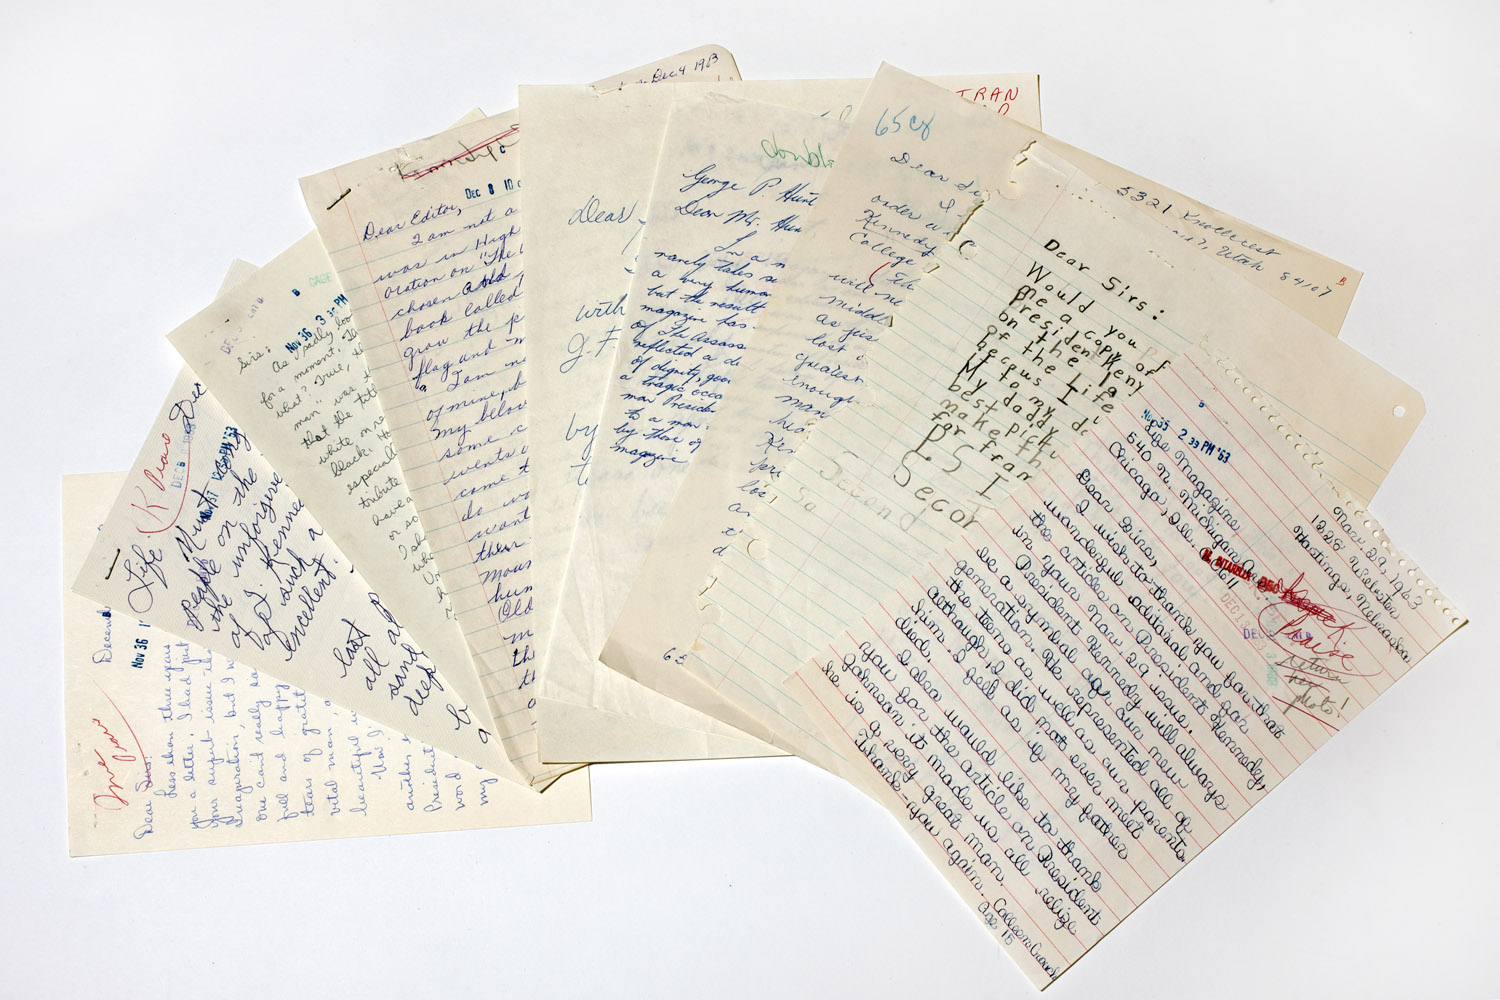 A sample of the hundreds of letters LIFE received following the publication of the JFK memorial edition in late 1963.